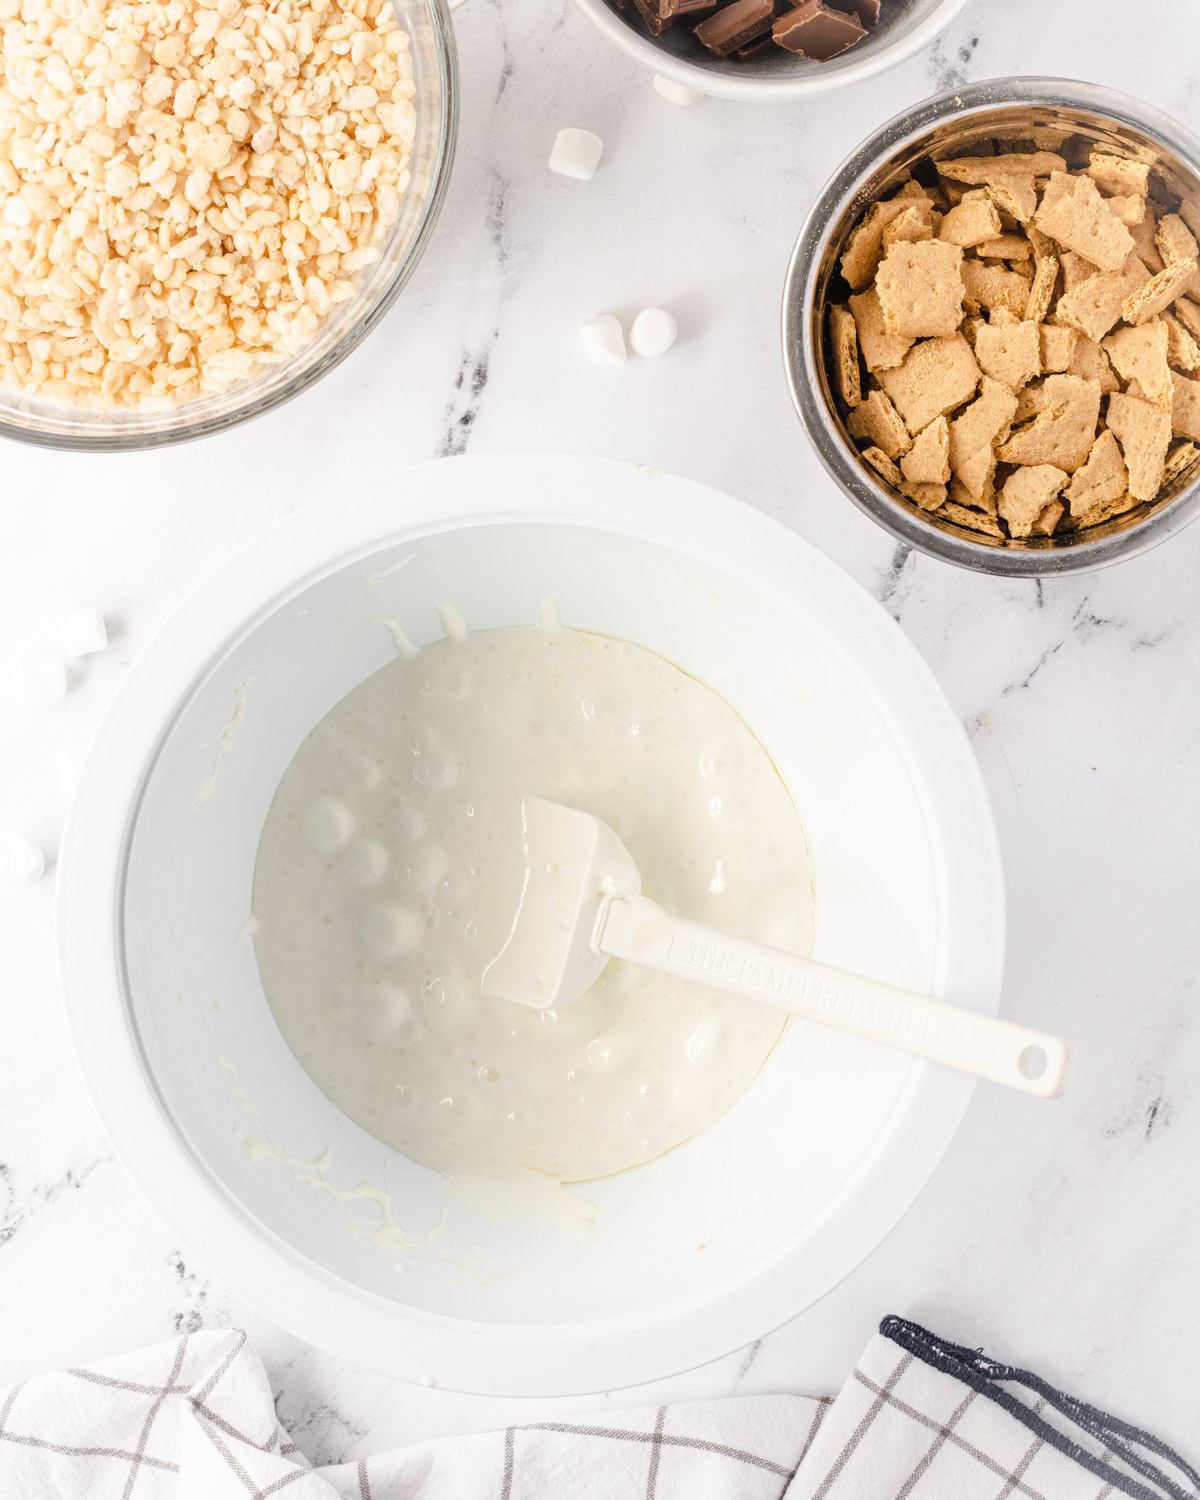 Melted marshmallows in a large bowl, with a bowl of rice krispies and a bowl of graham cracker pieces above it.